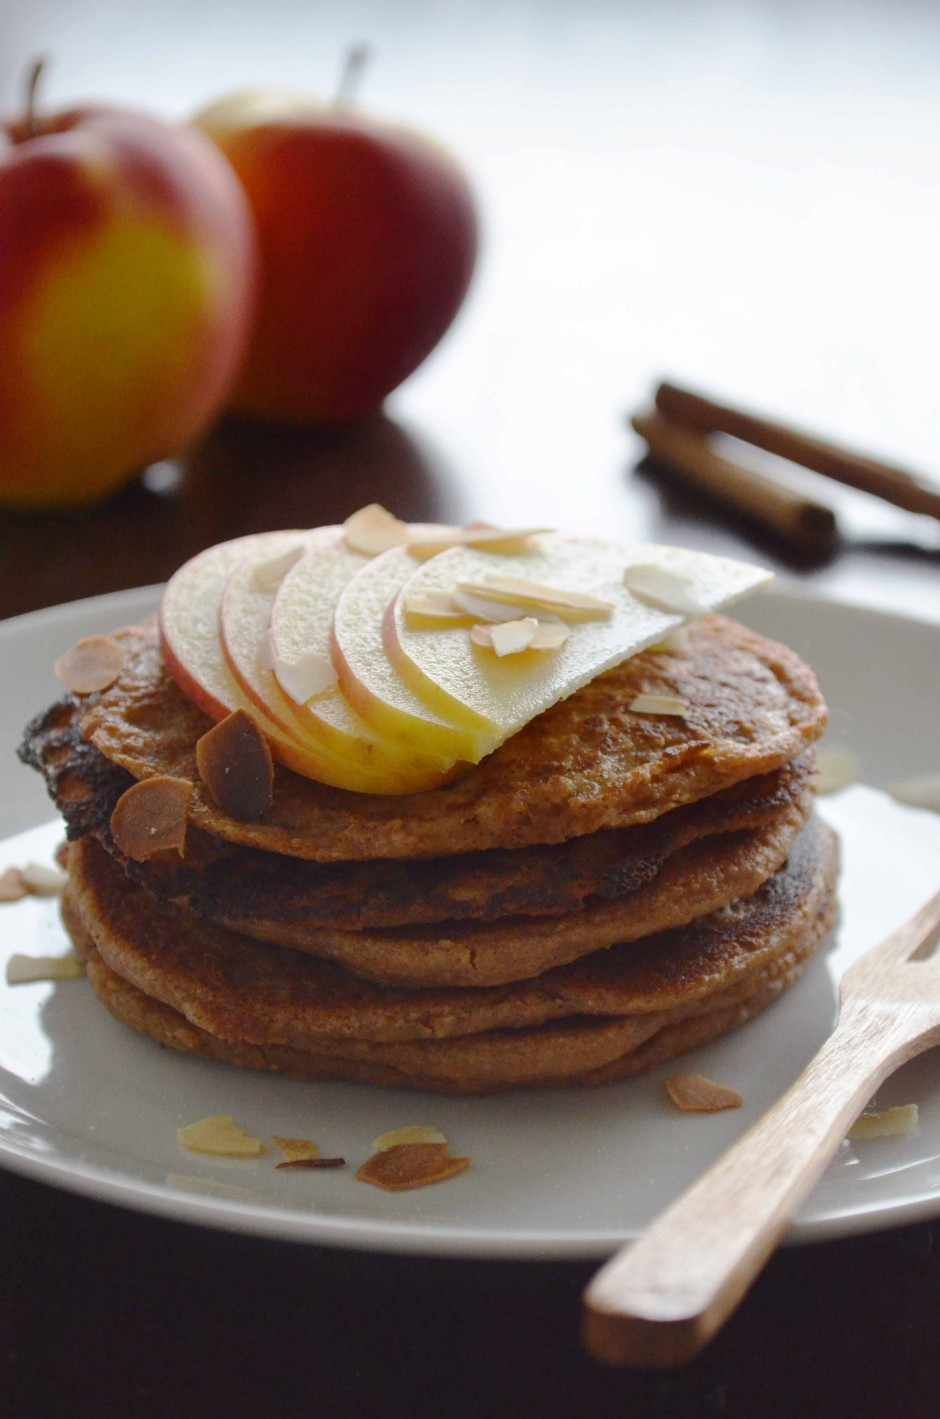 Recipe for autumnal apple pancakes via That Healthy Kitchen